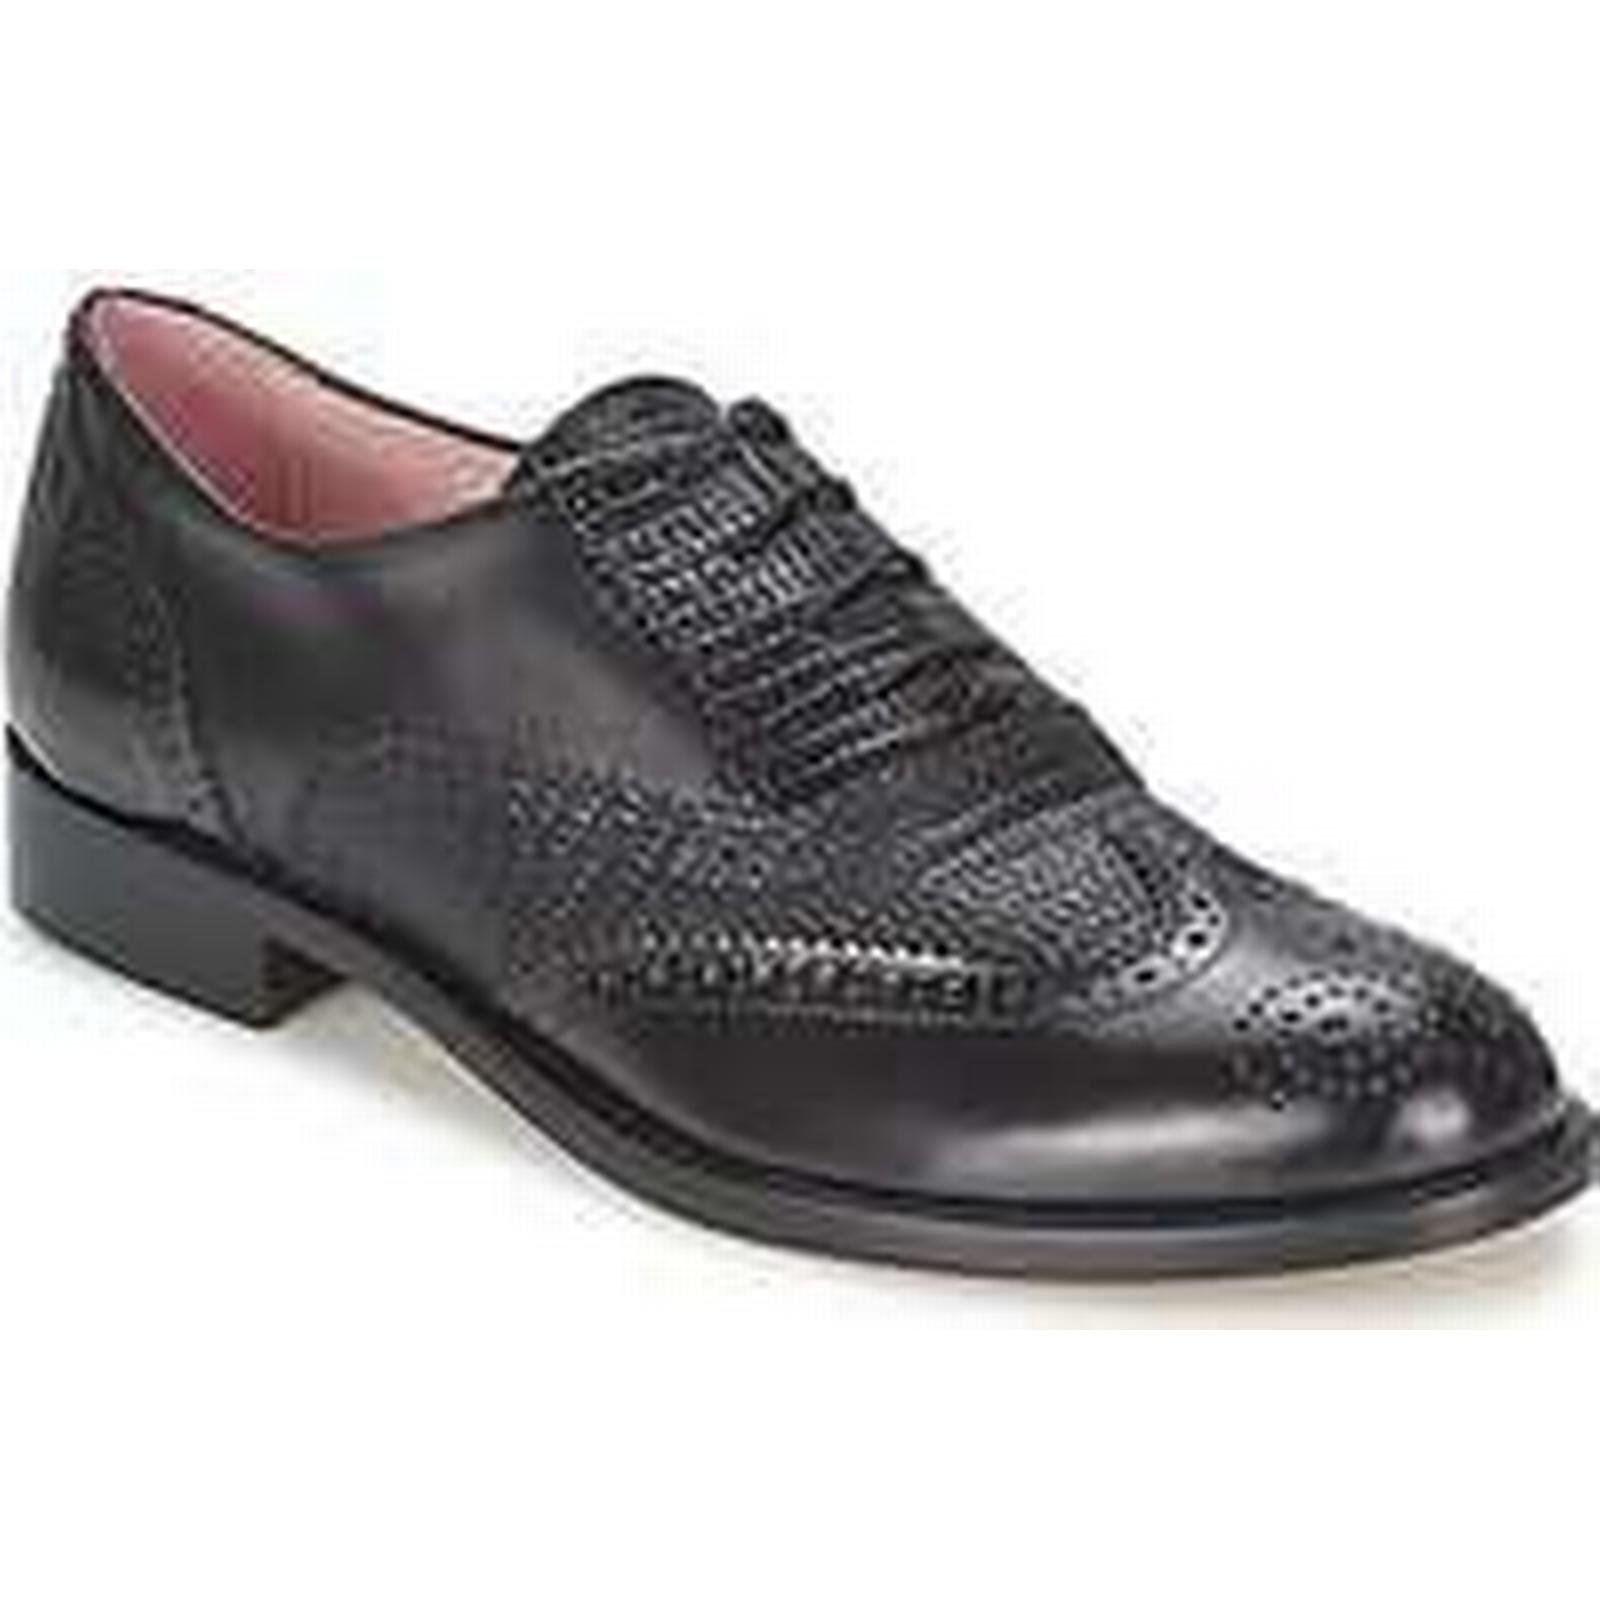 Spartoo.co.uk Elia B Shoes SPECTATOR women's Smart / Formal Shoes B in Black 8c05b6